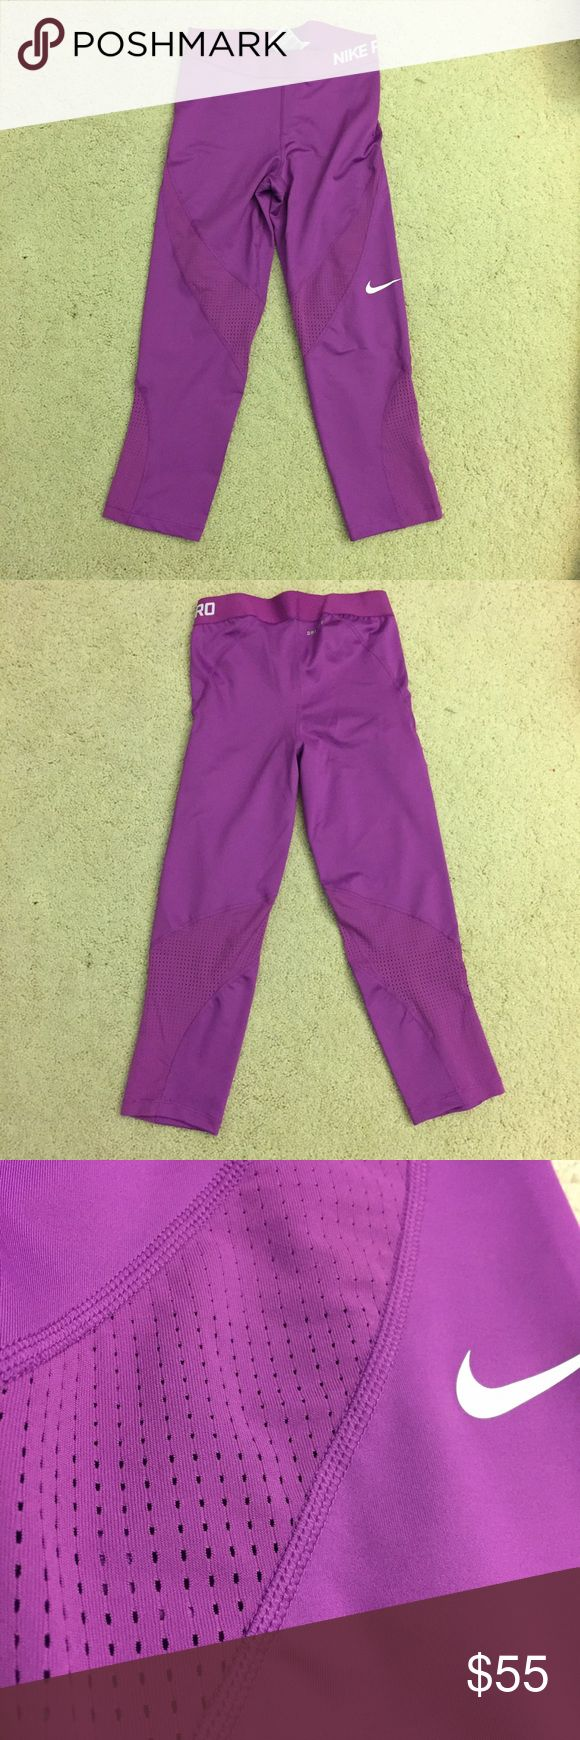 NWOT Nike Pro Hypercool Cropped Super cute bright purple cropped leggings! It has mesh detailing. Worn once. Perfect condition. Nike Pants Leggings